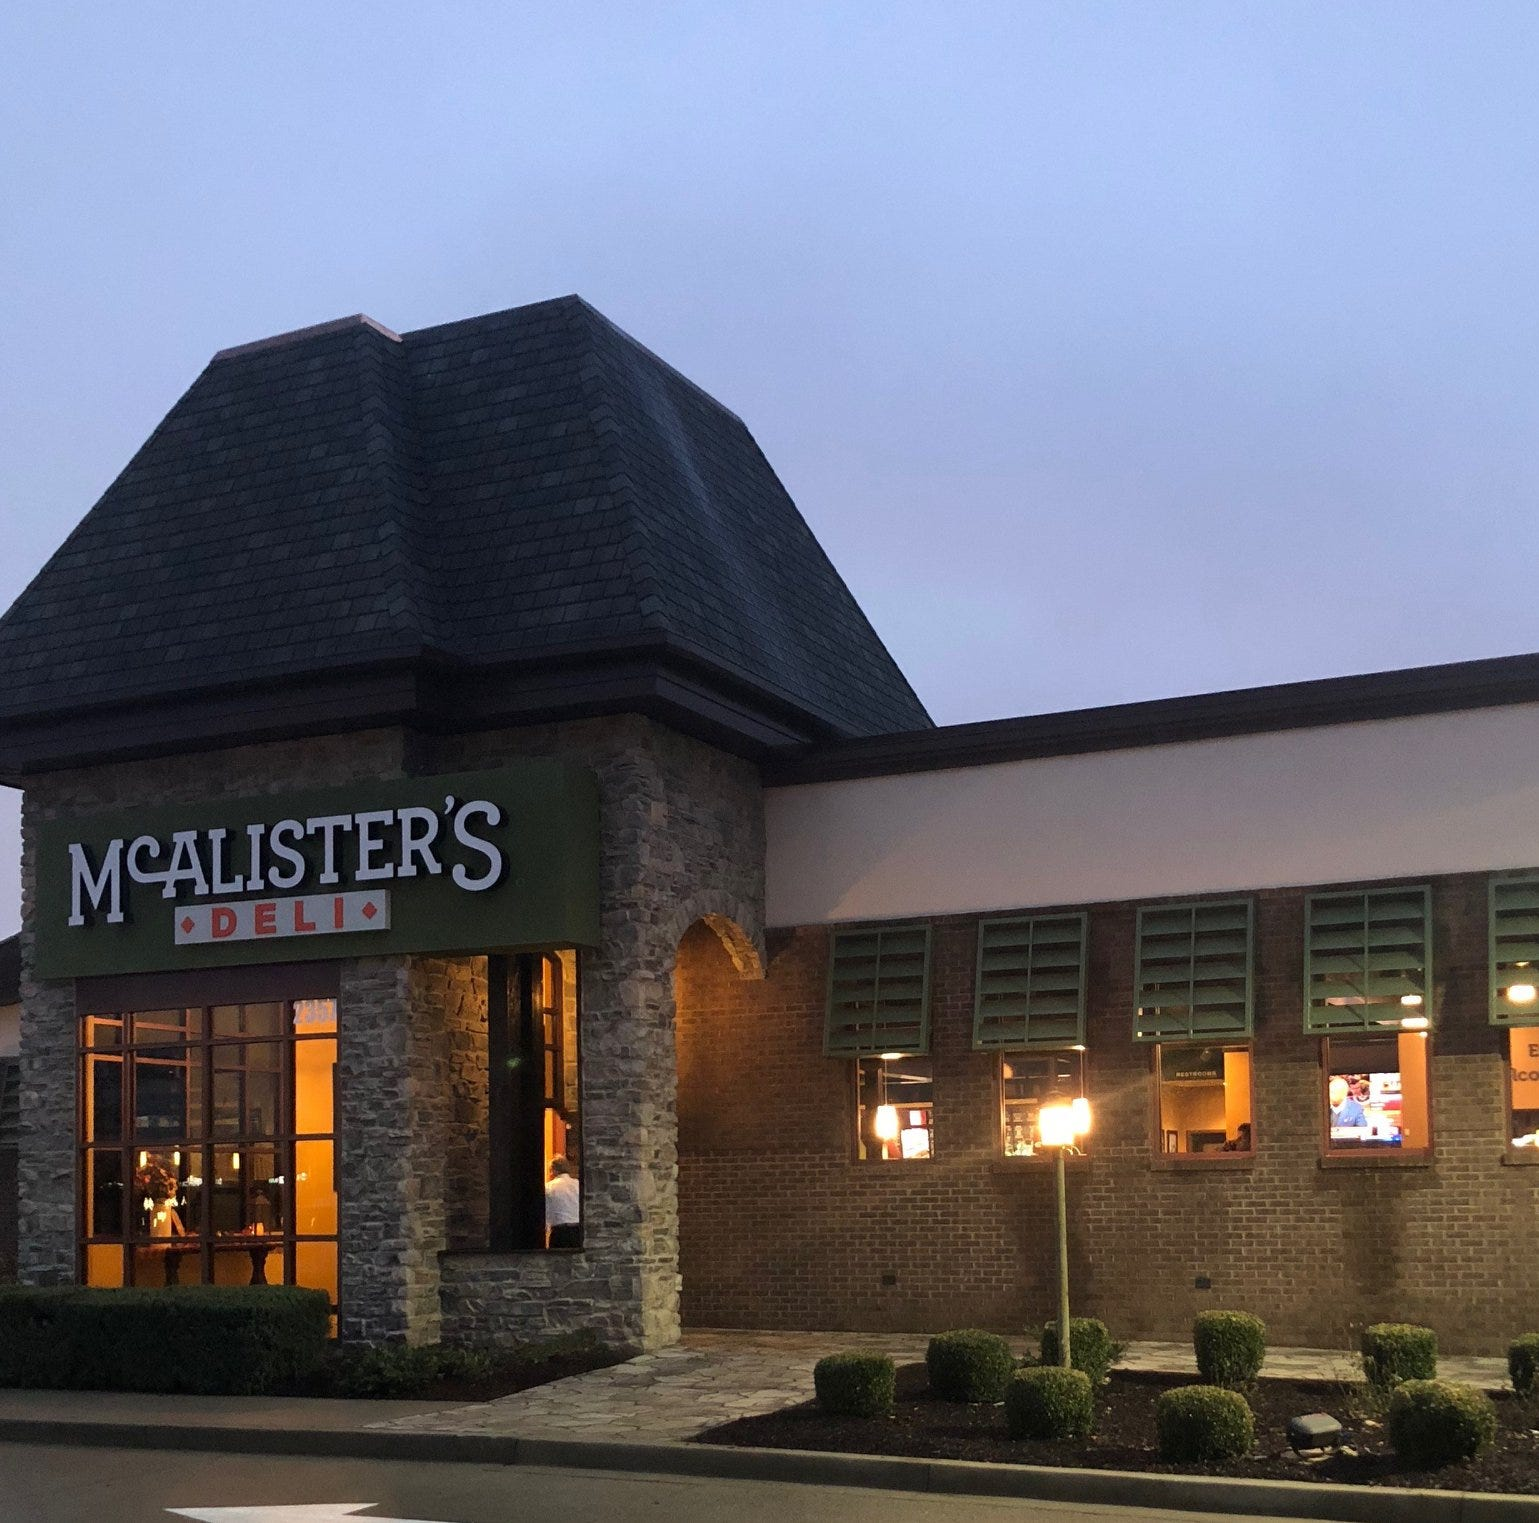 McAlister's Deli the newest eatery to open in Murfreesboro's Gateway